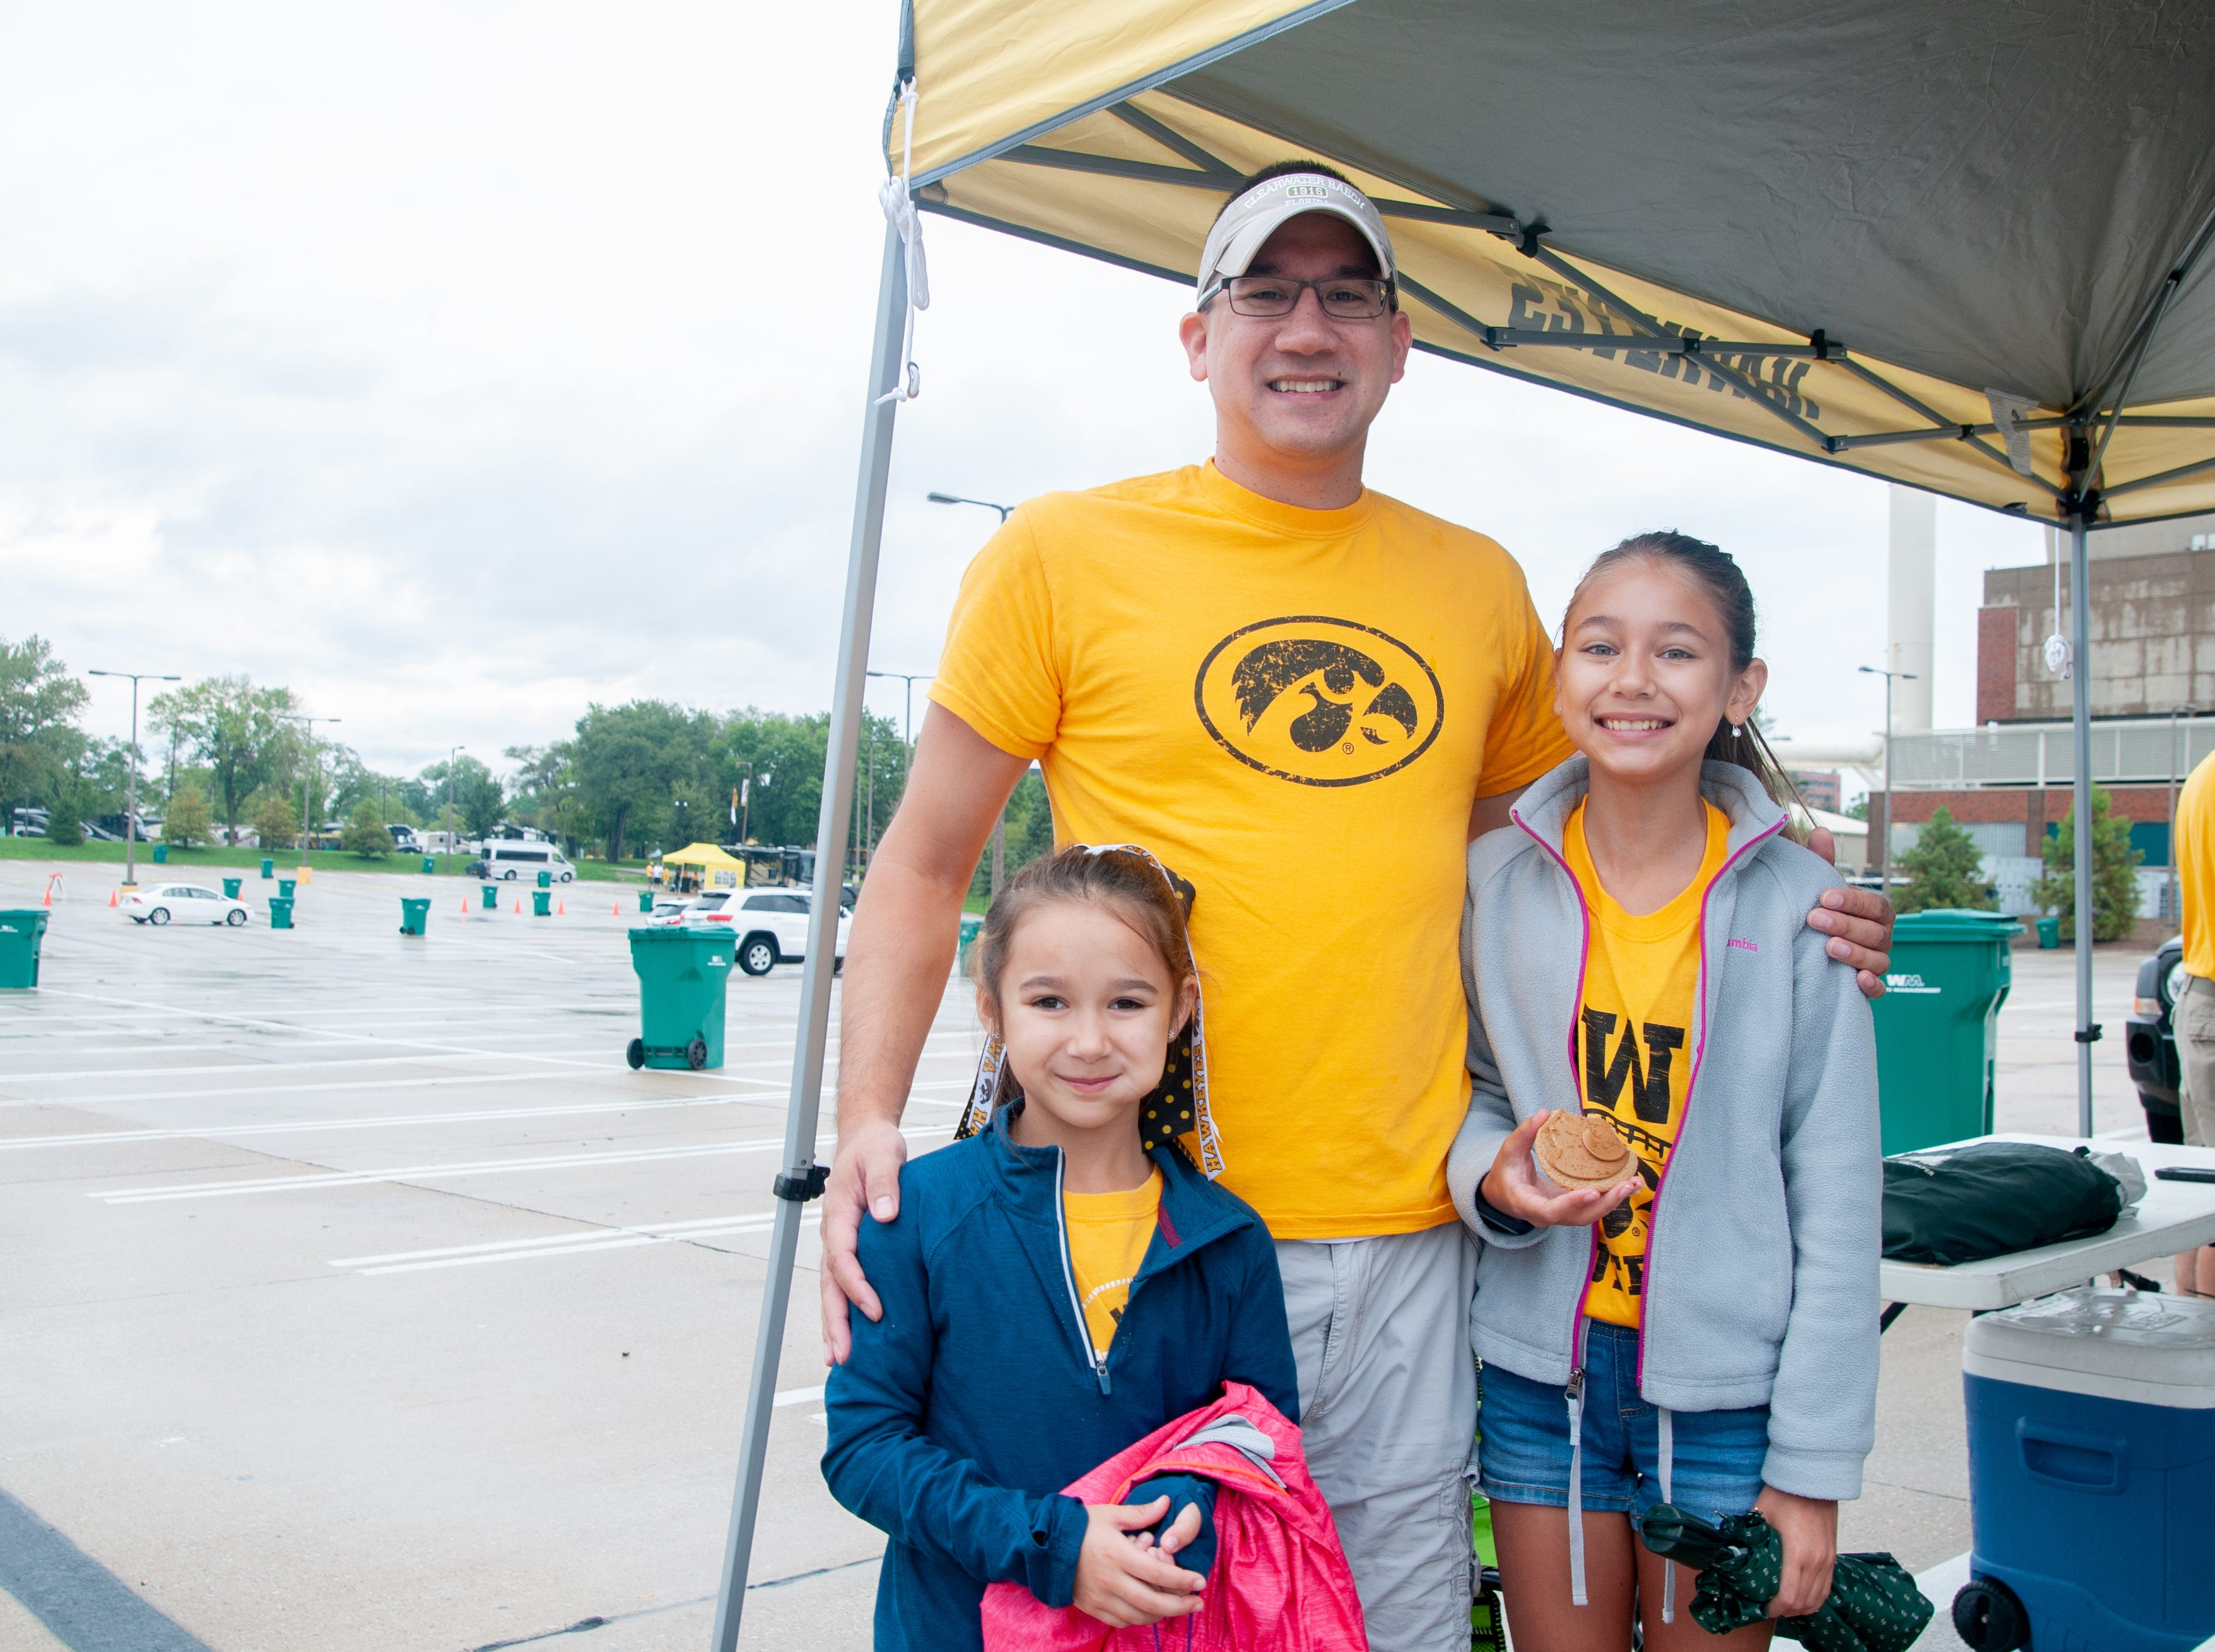 Marina, 6, (left), Jason, 42, and Melia Drugg, 11, of Coralville, Saturday, Sept. 1, 2018, while tailgating before the Iowa game against Northern Illinois in Iowa City.